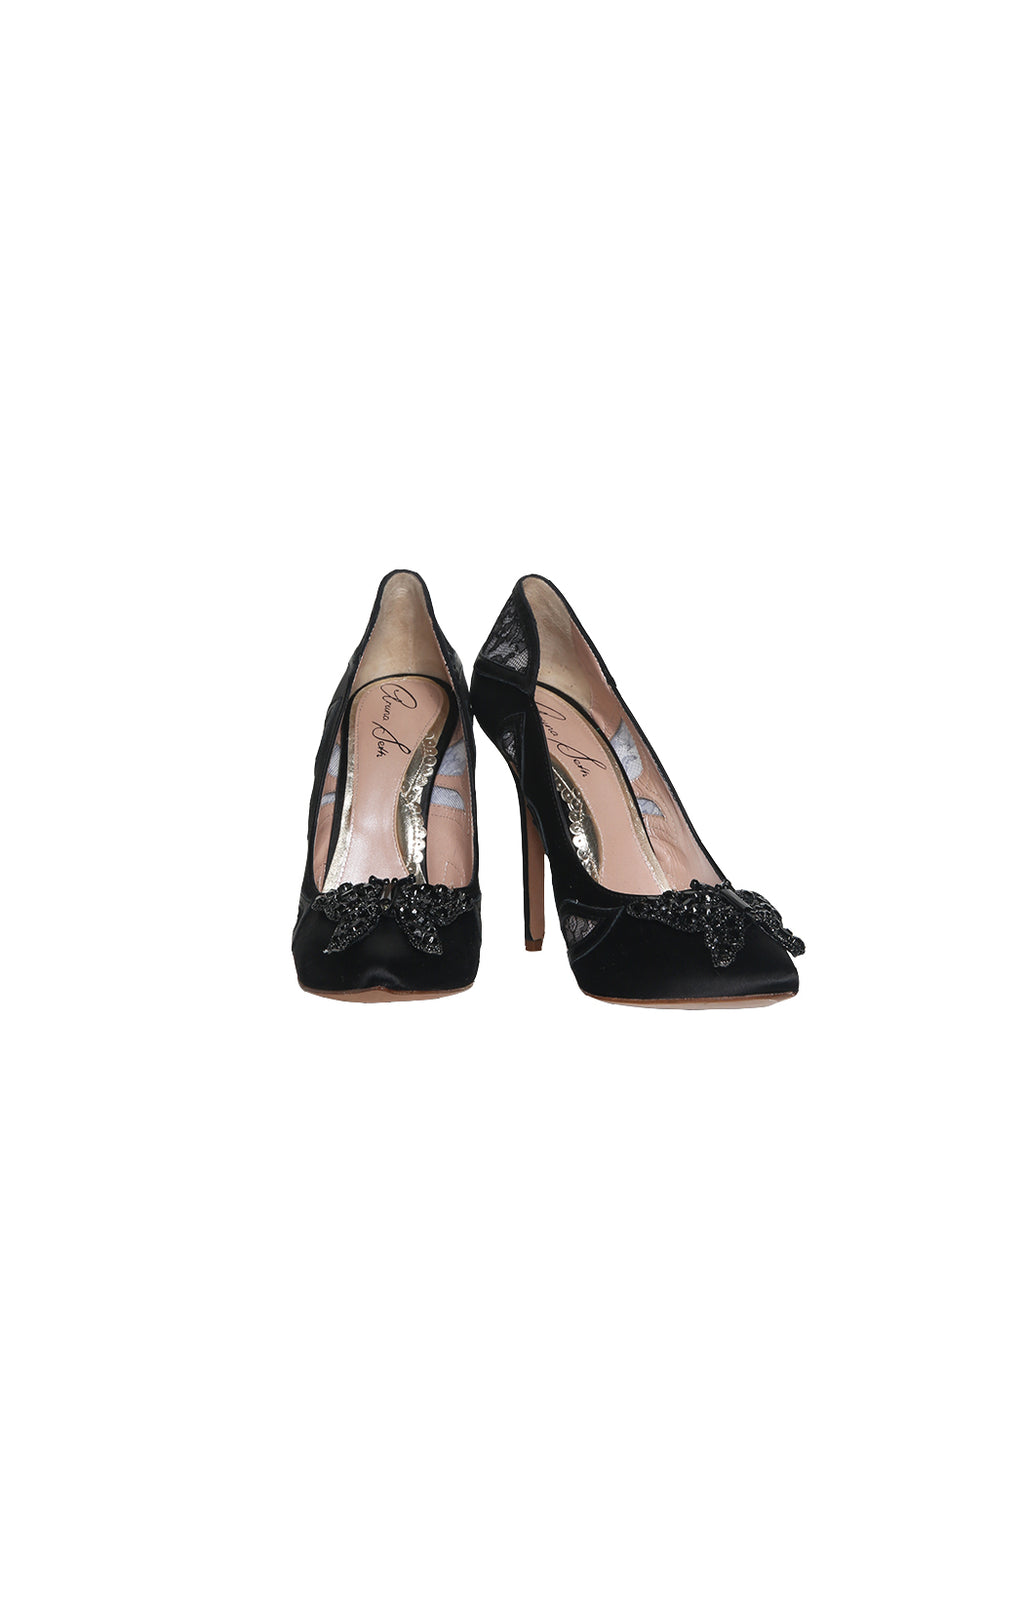 Front view of ARUNA SETH Pumps  Size: 39 (US 9)